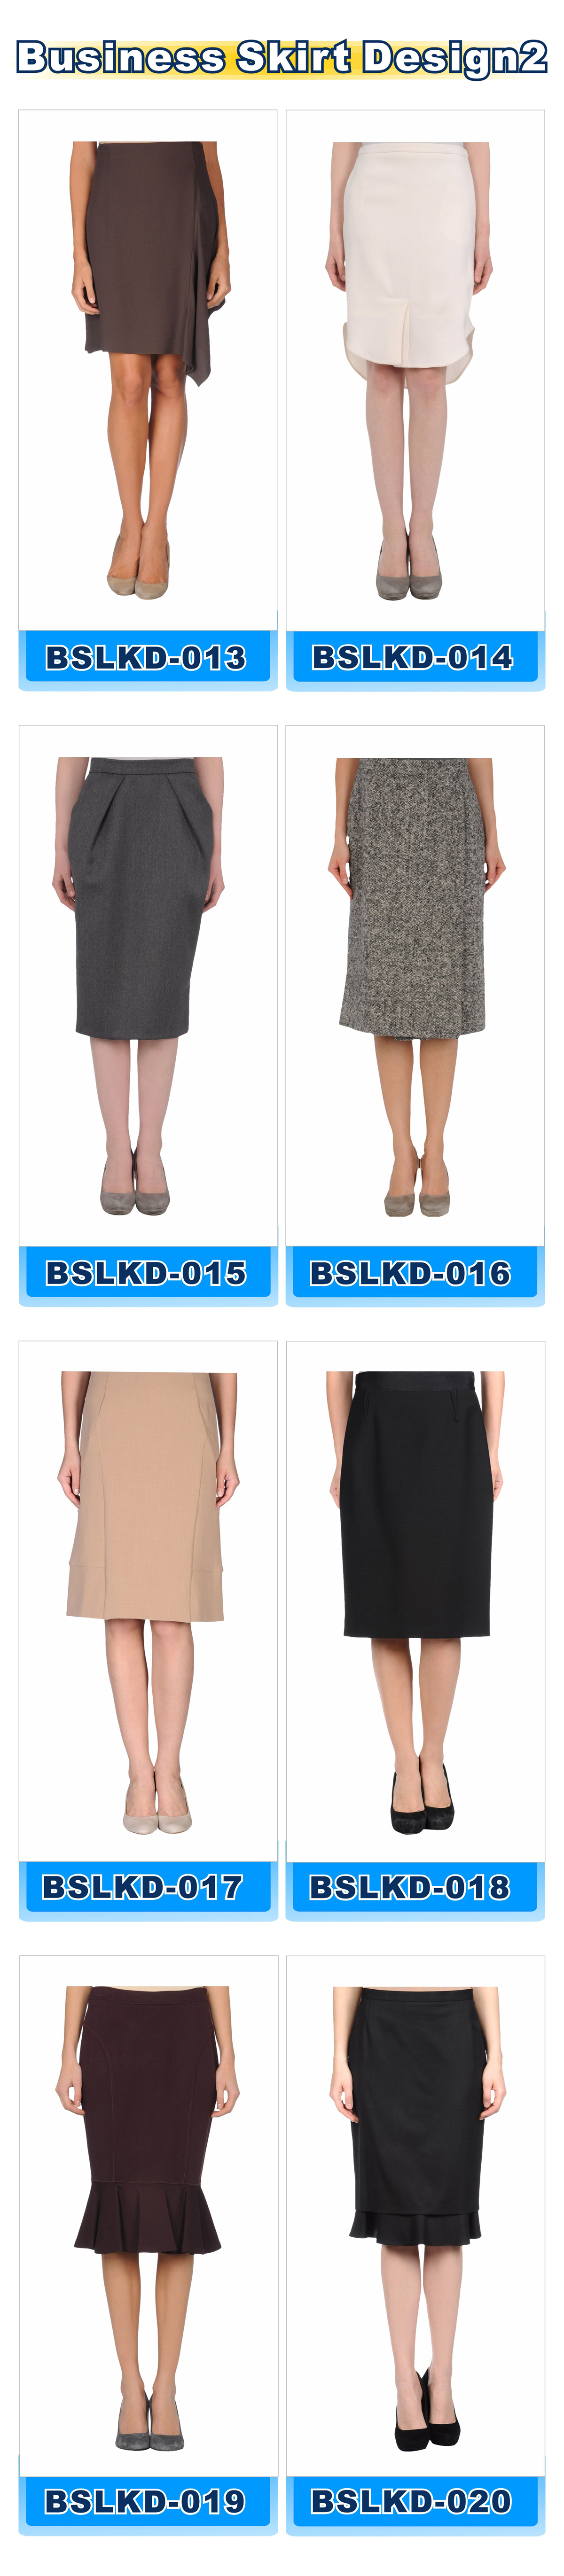 business skirts design2